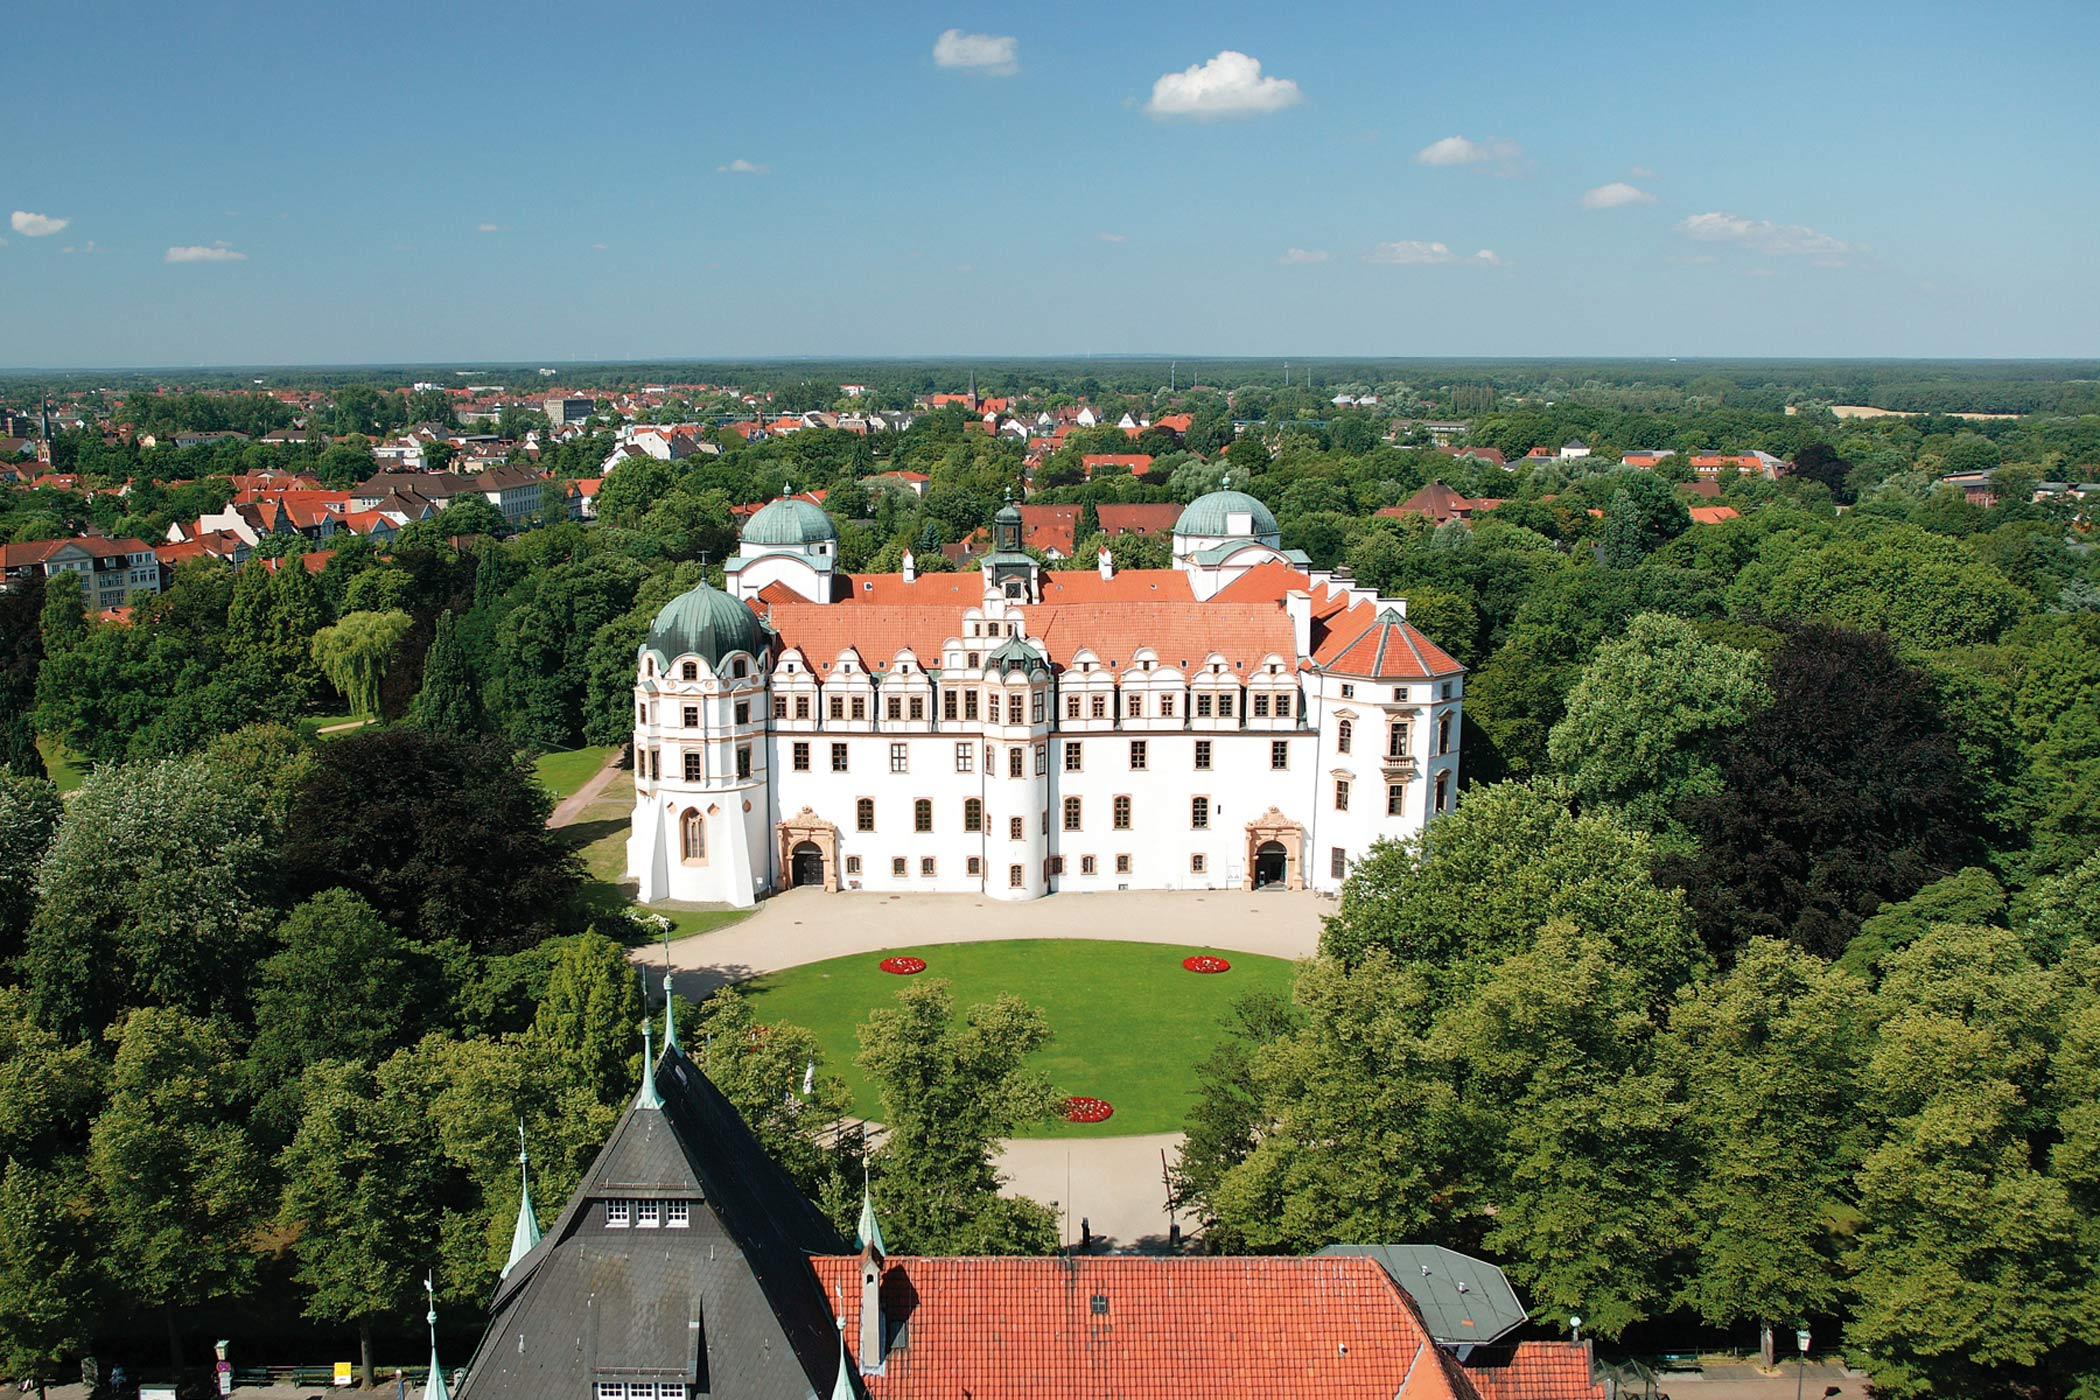 Celle Schloss / Palace c) Celle Tourismus und Marketing GmbH